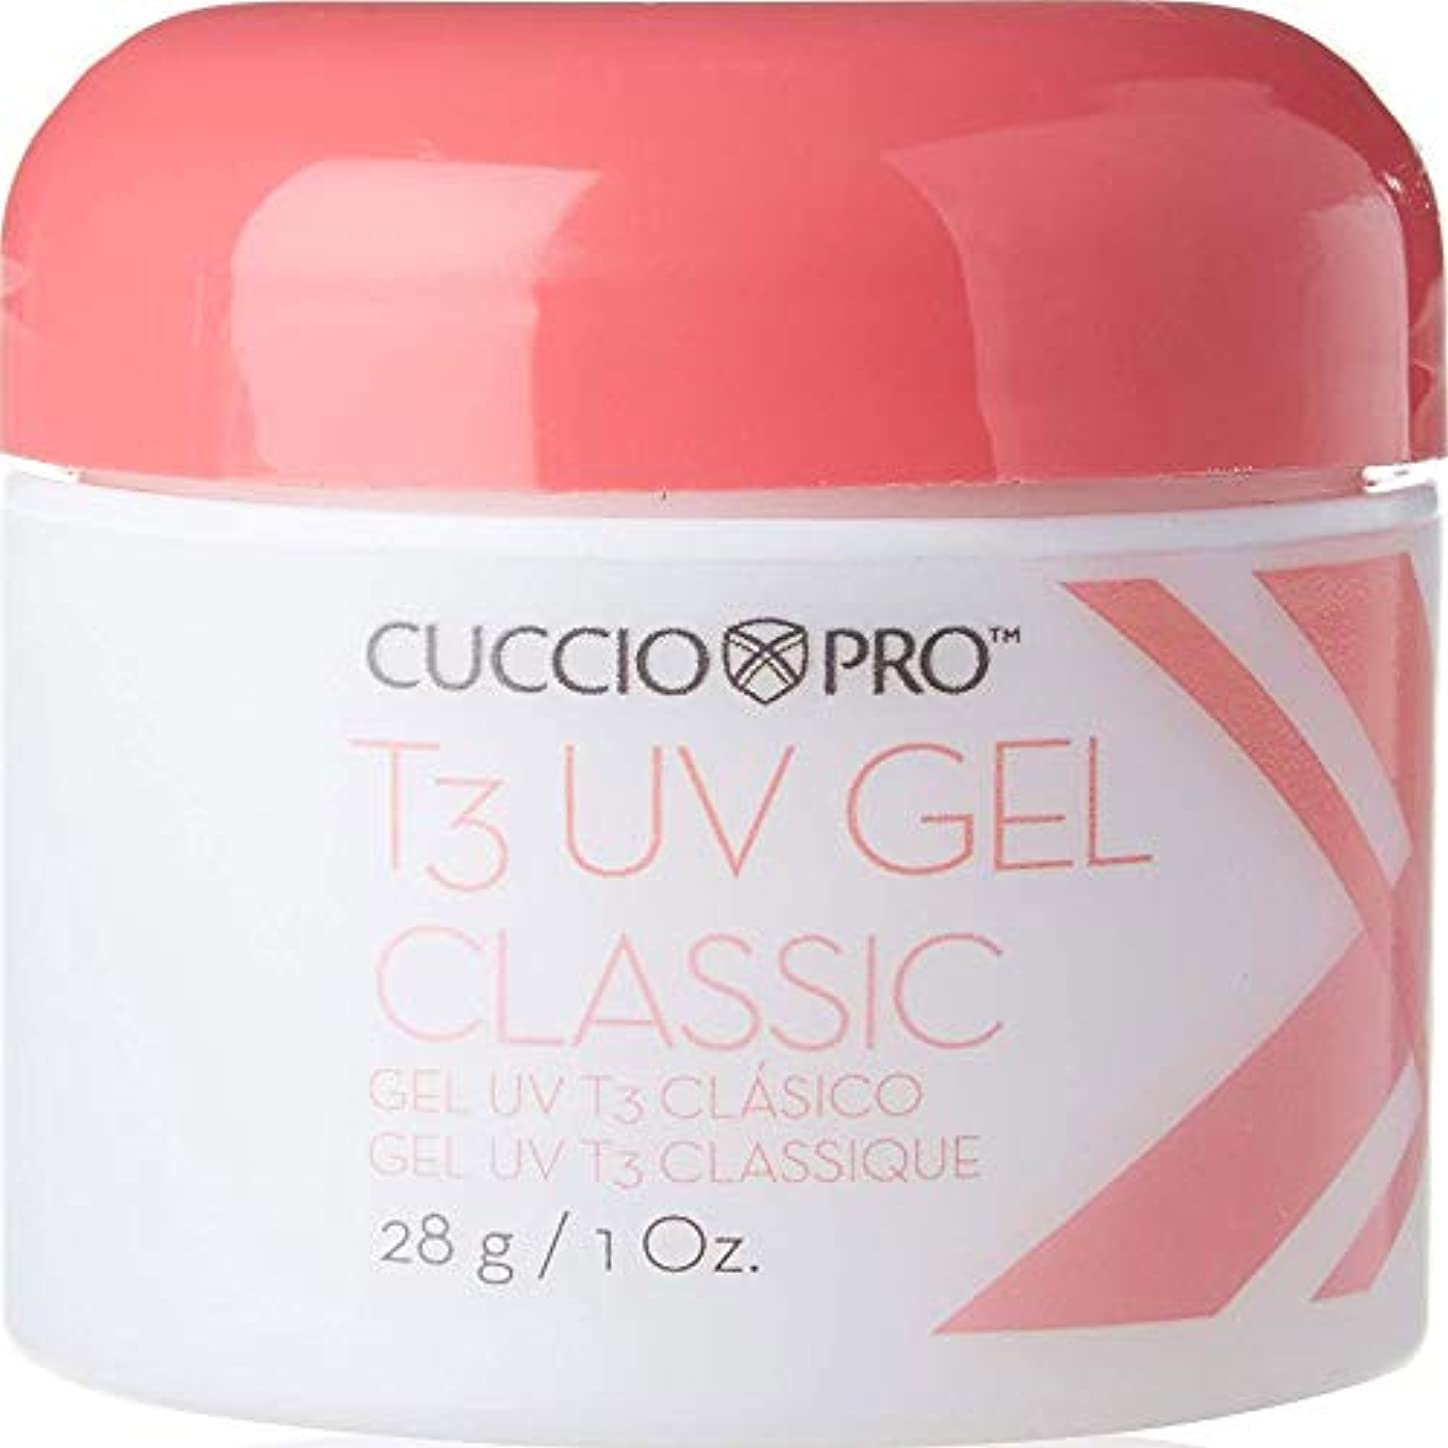 Cuccio Pro T3 UV Gel Classic Pink for High Shine Natural and Artificial Nails 28g